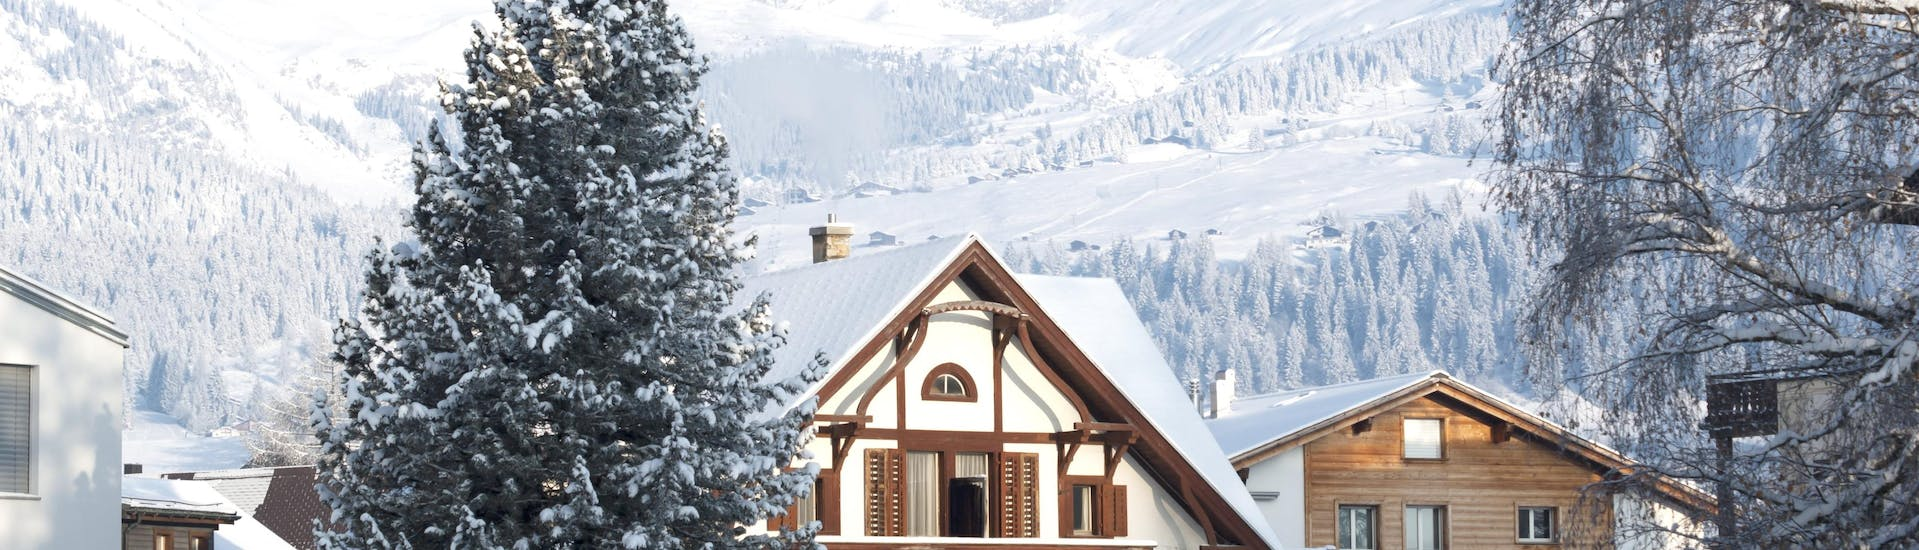 An image of some of the snow-covered chalets in the Swiss ski resort of  Laax-Flims-Falera, where visitors can books ski lessons with one of the local ski schools.